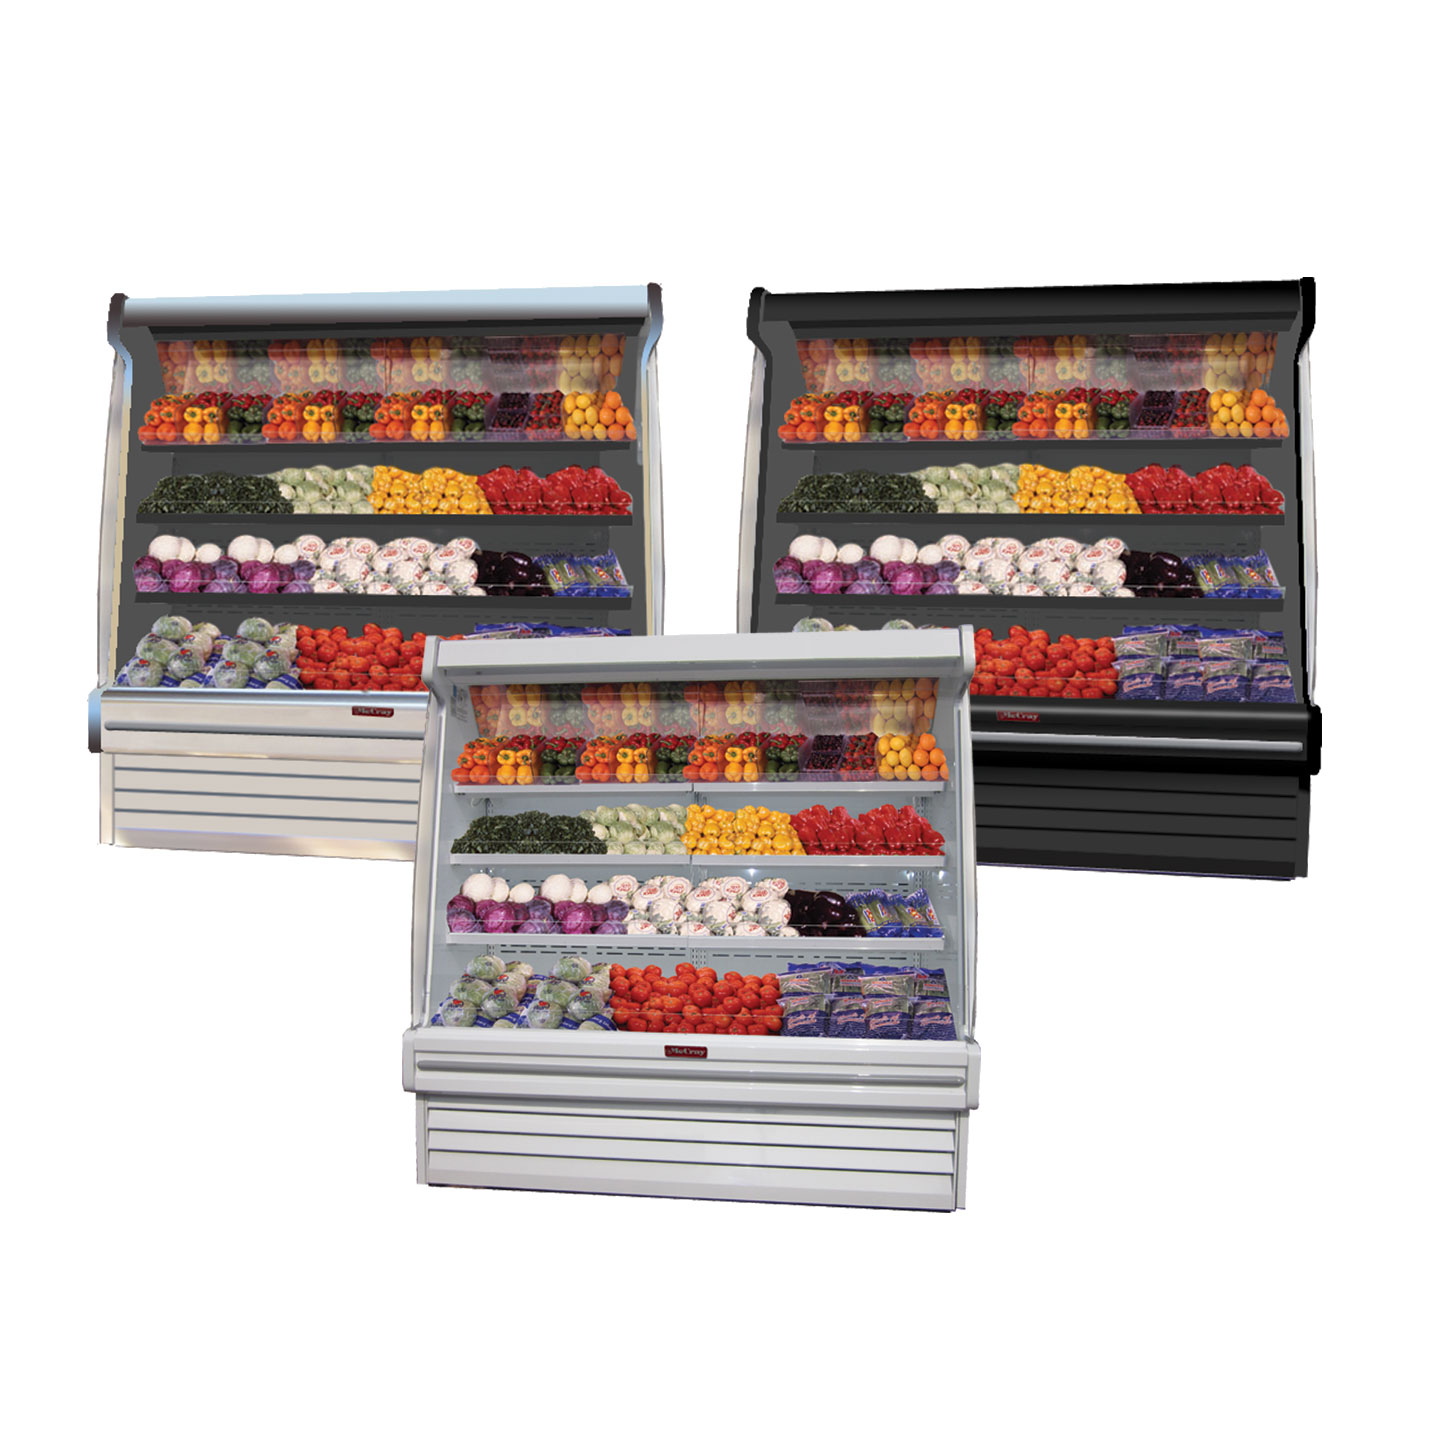 Howard-McCray R-OP35E-3S-S-LED display case, produce